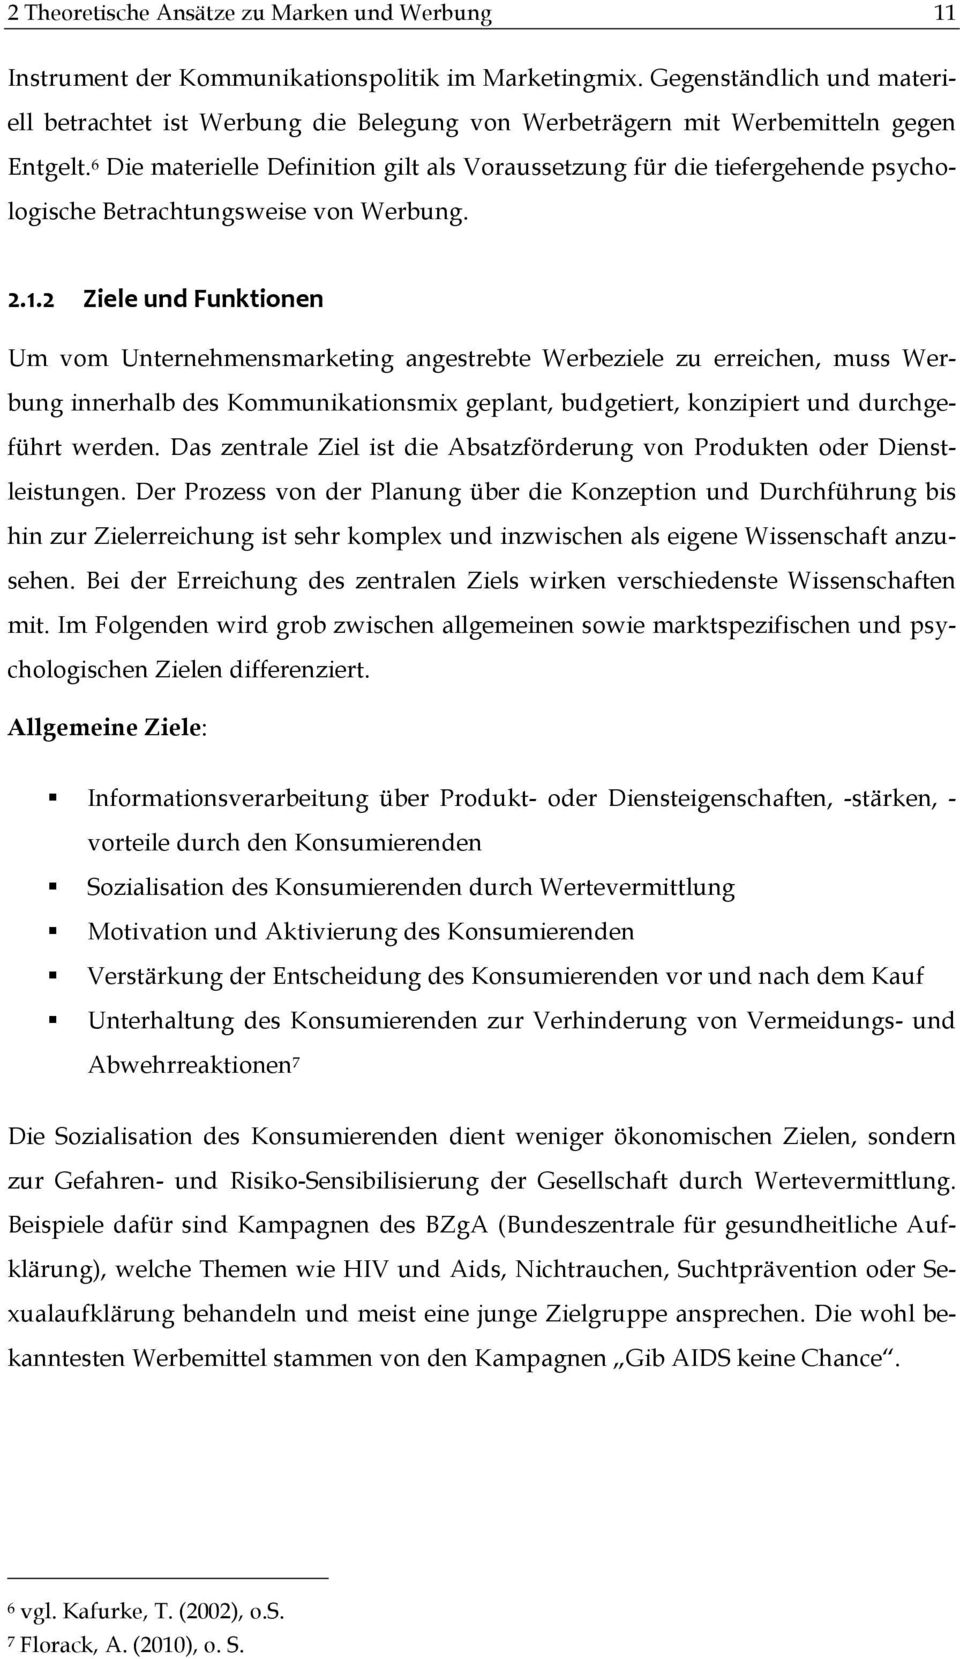 voraussetzung bachelor thesis Cheap essay writing service at your fingertips find out why it is so important coffee won't help you to write a good essay  a strong college essays examples personal statements thesis answers the question you want to raise it does so by write thesis statement english paper presenting a topic we write essays.